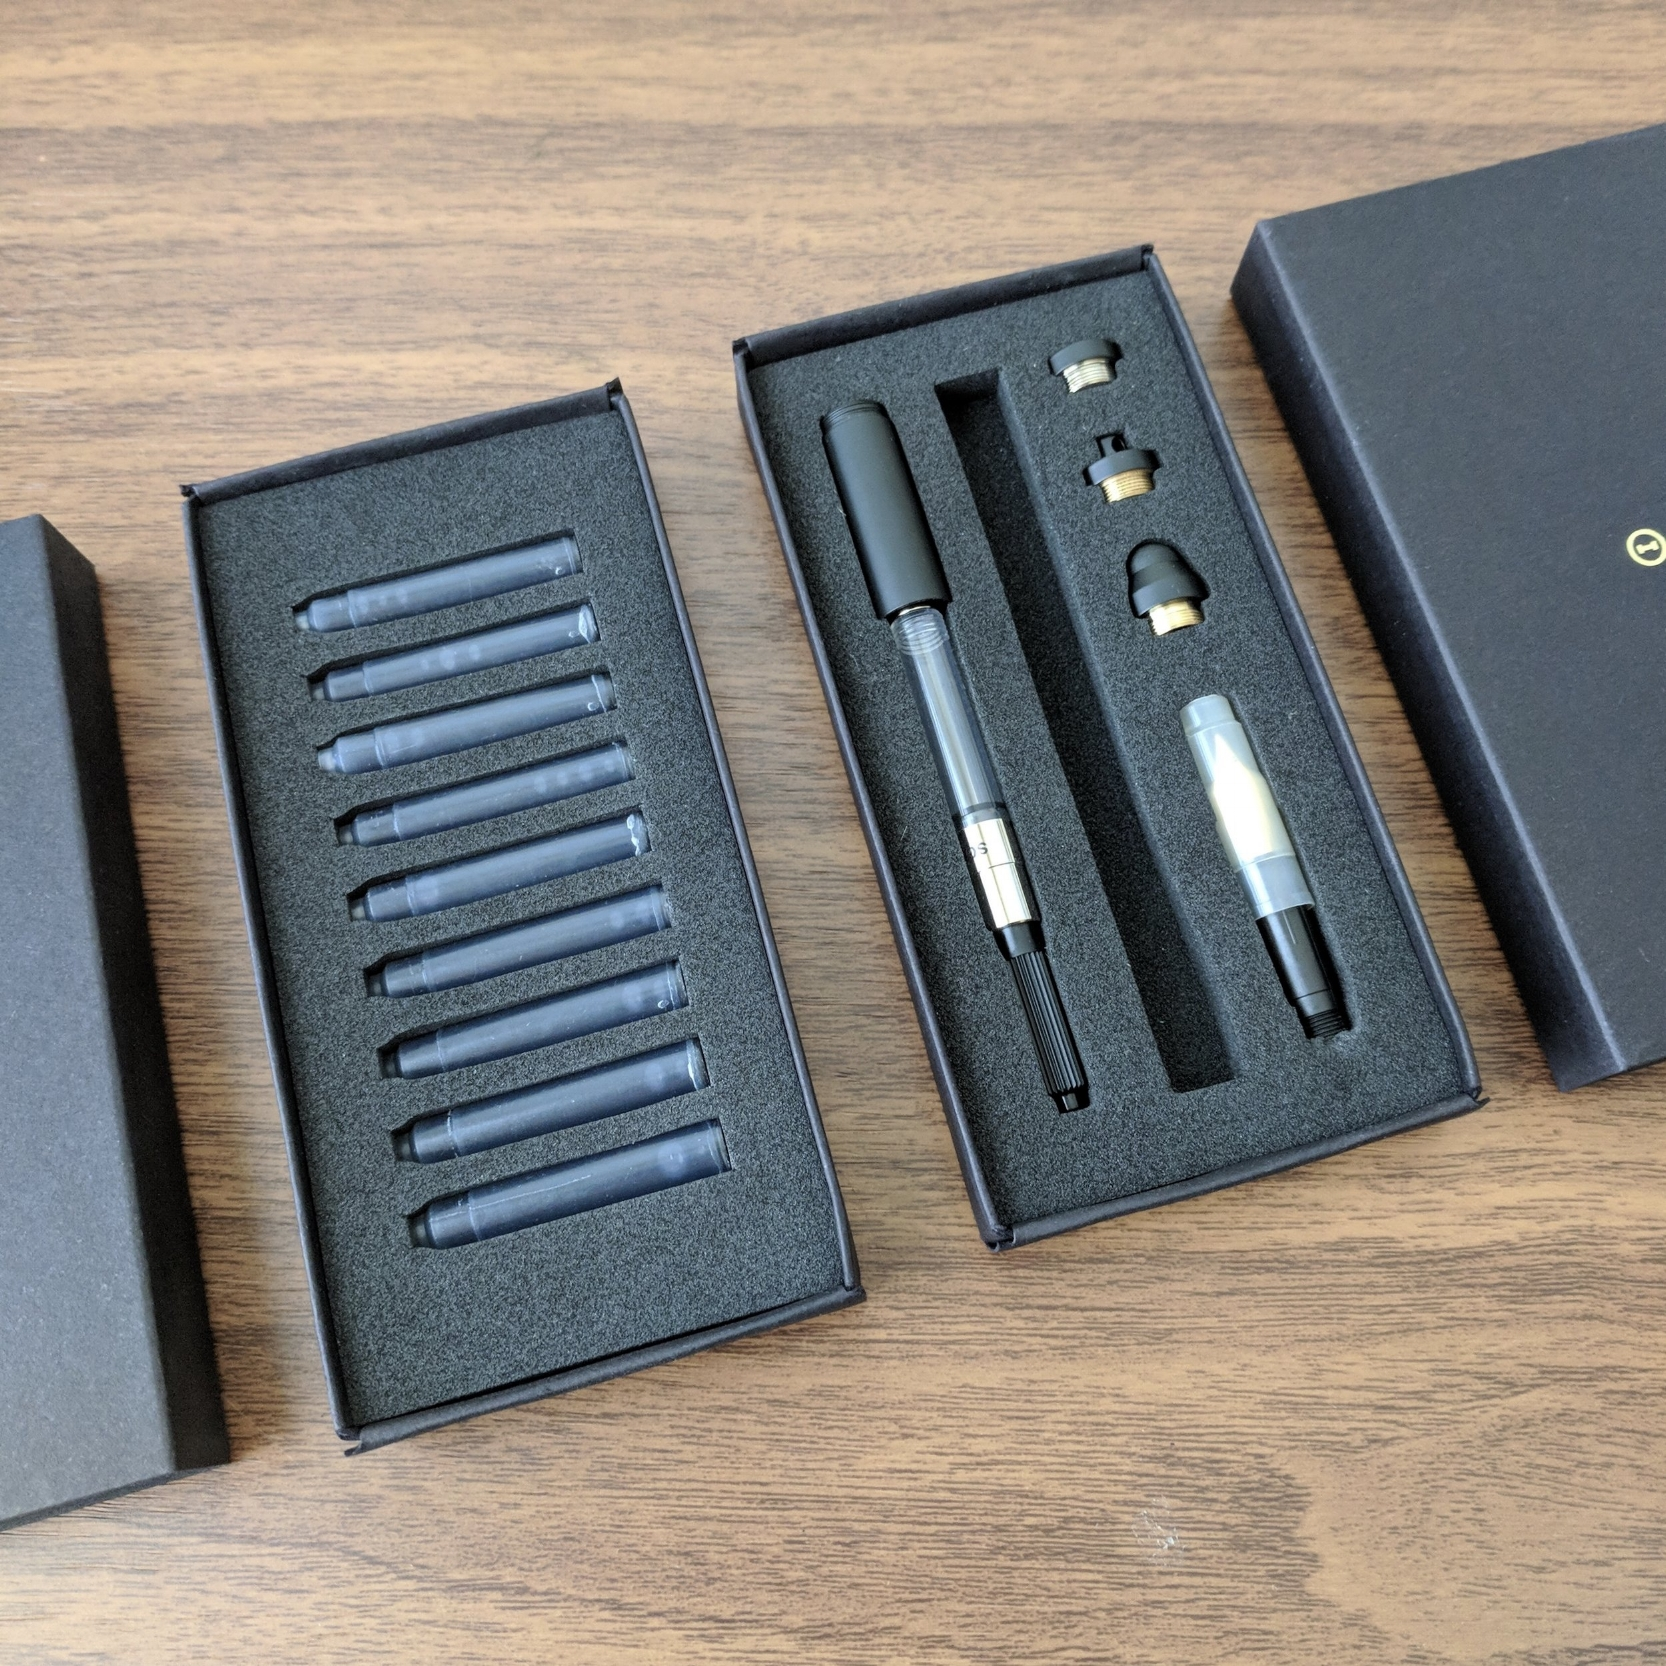 Inventery has great packaging. Pictured is the kit for the Pocket Fountain Pen with Extender, in Onyx. I've opted to swap in the Rollerball tip, with the clip, but you can see the options for fountain pen nib, clipless cap, stylus cap, and keychain cap, as well as the extender with converter.